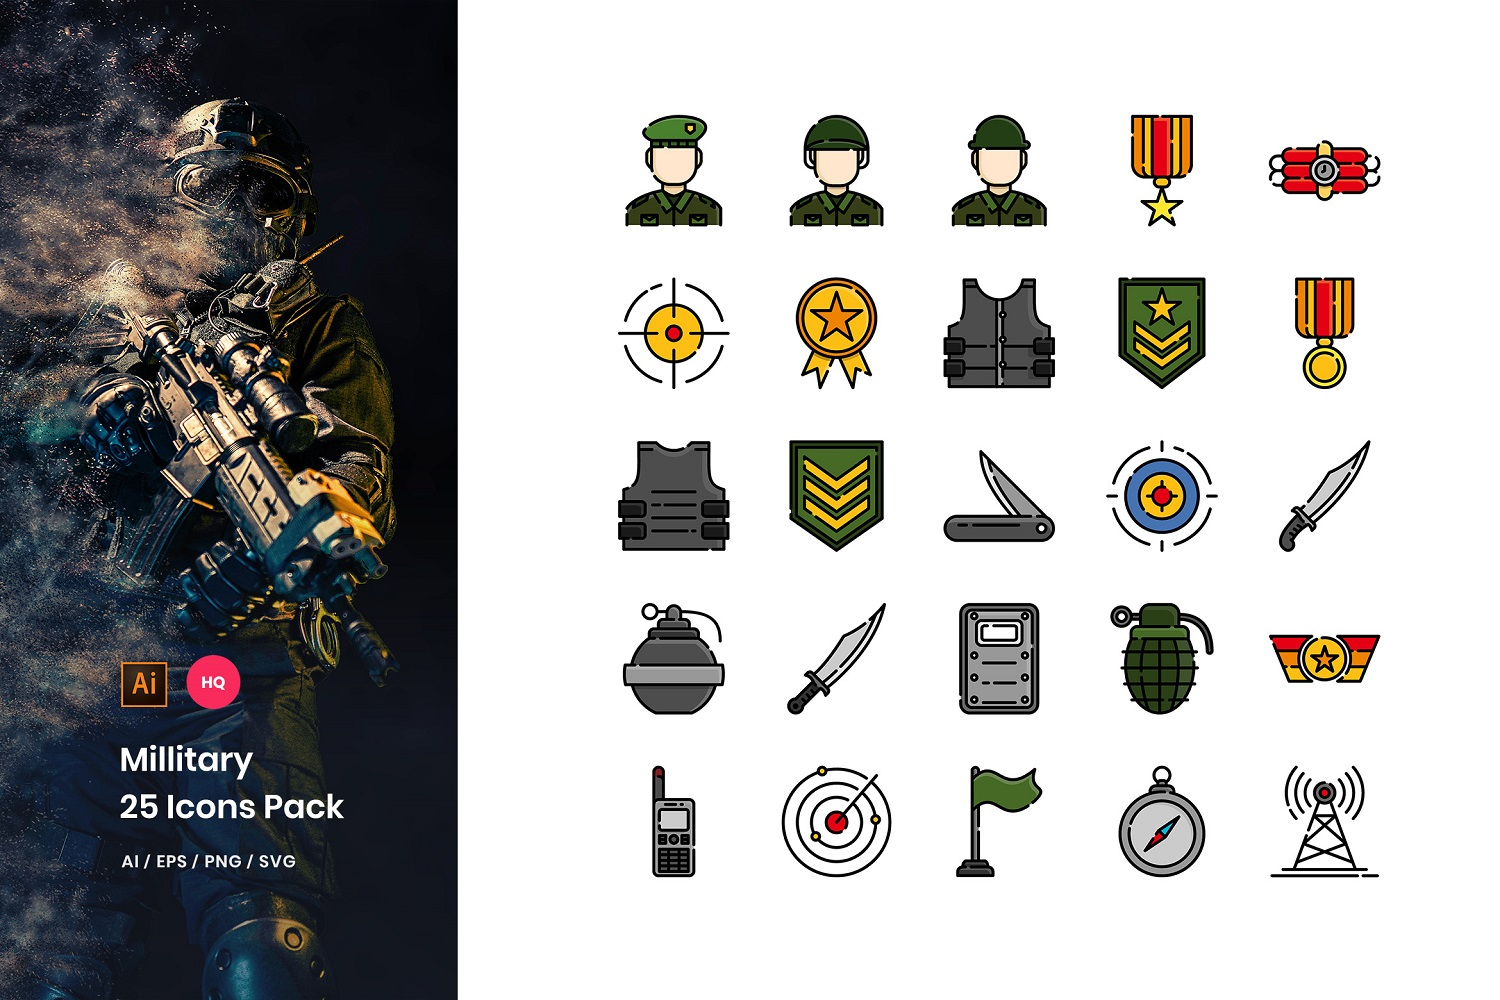 Military Pack Iconset Template